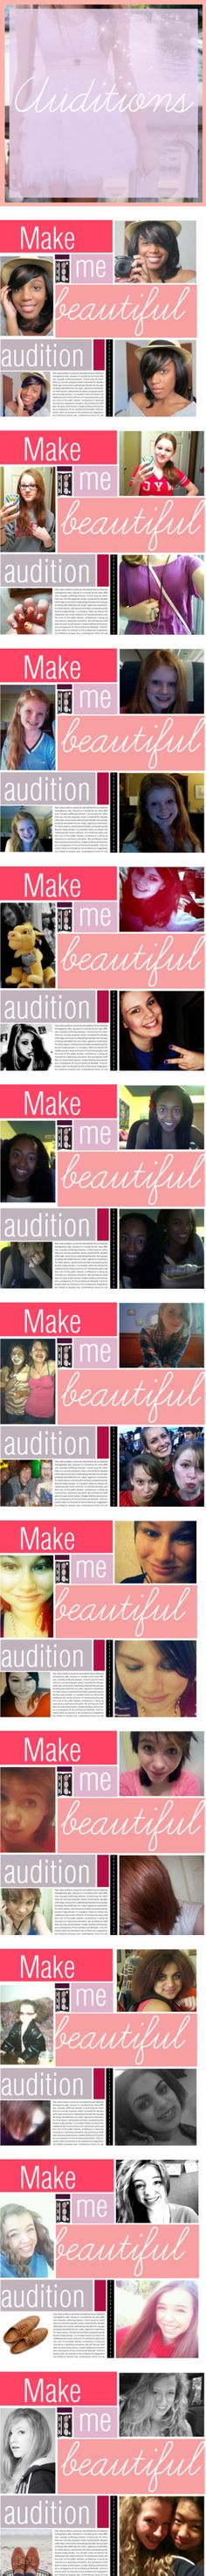 """Make Me Beautiful Auditions!"" by makeme-beautiful ❤ liked on Polyvore"